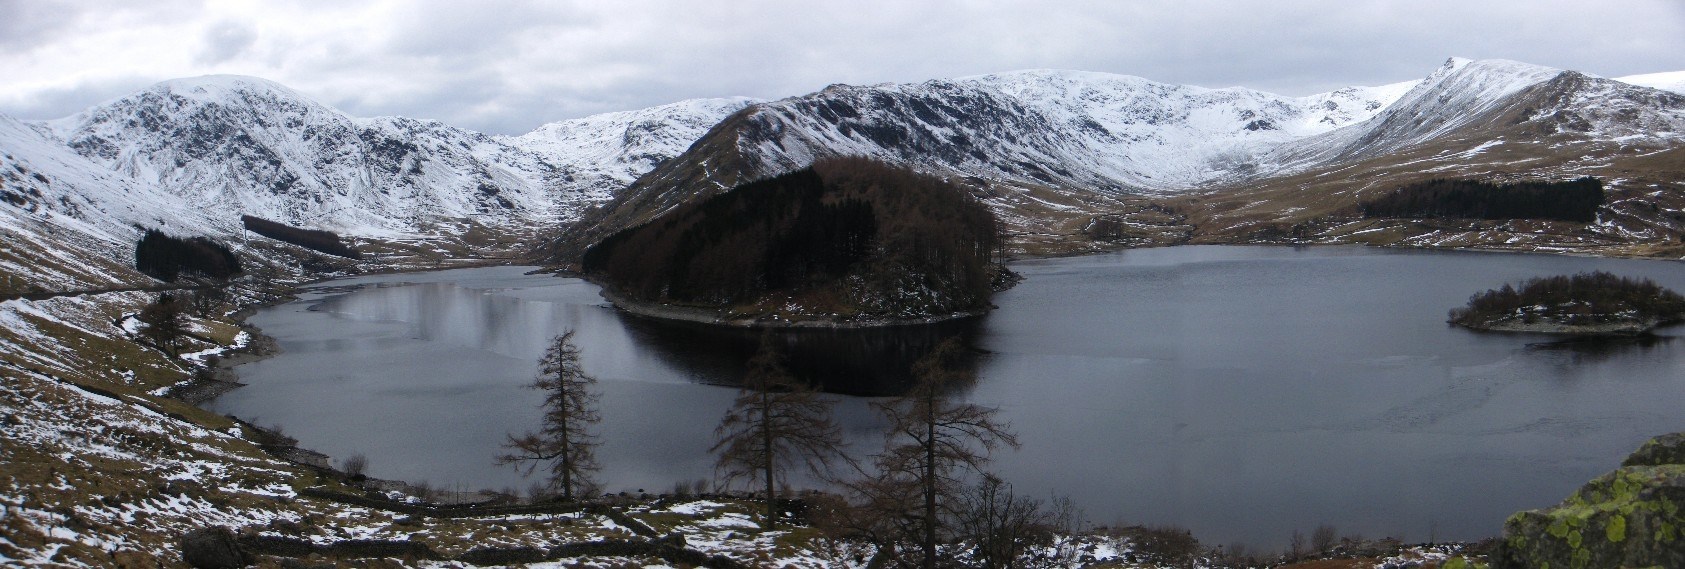 Mardale Head, The Rigg, Riggindale and Kidsty Pike panorama